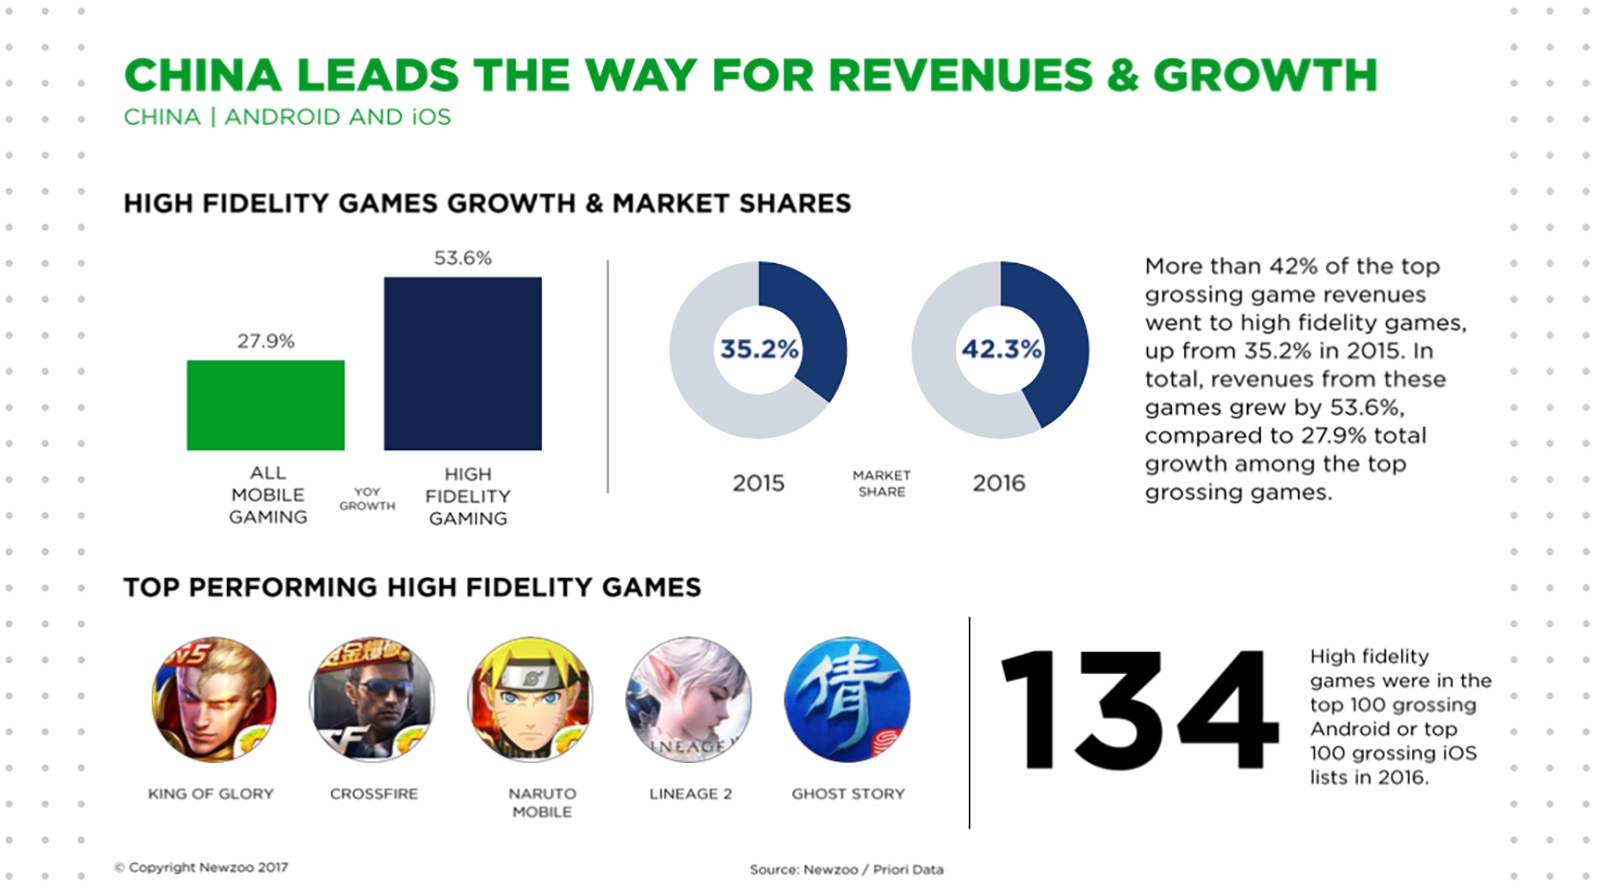 High Fidelity gaming is huge China